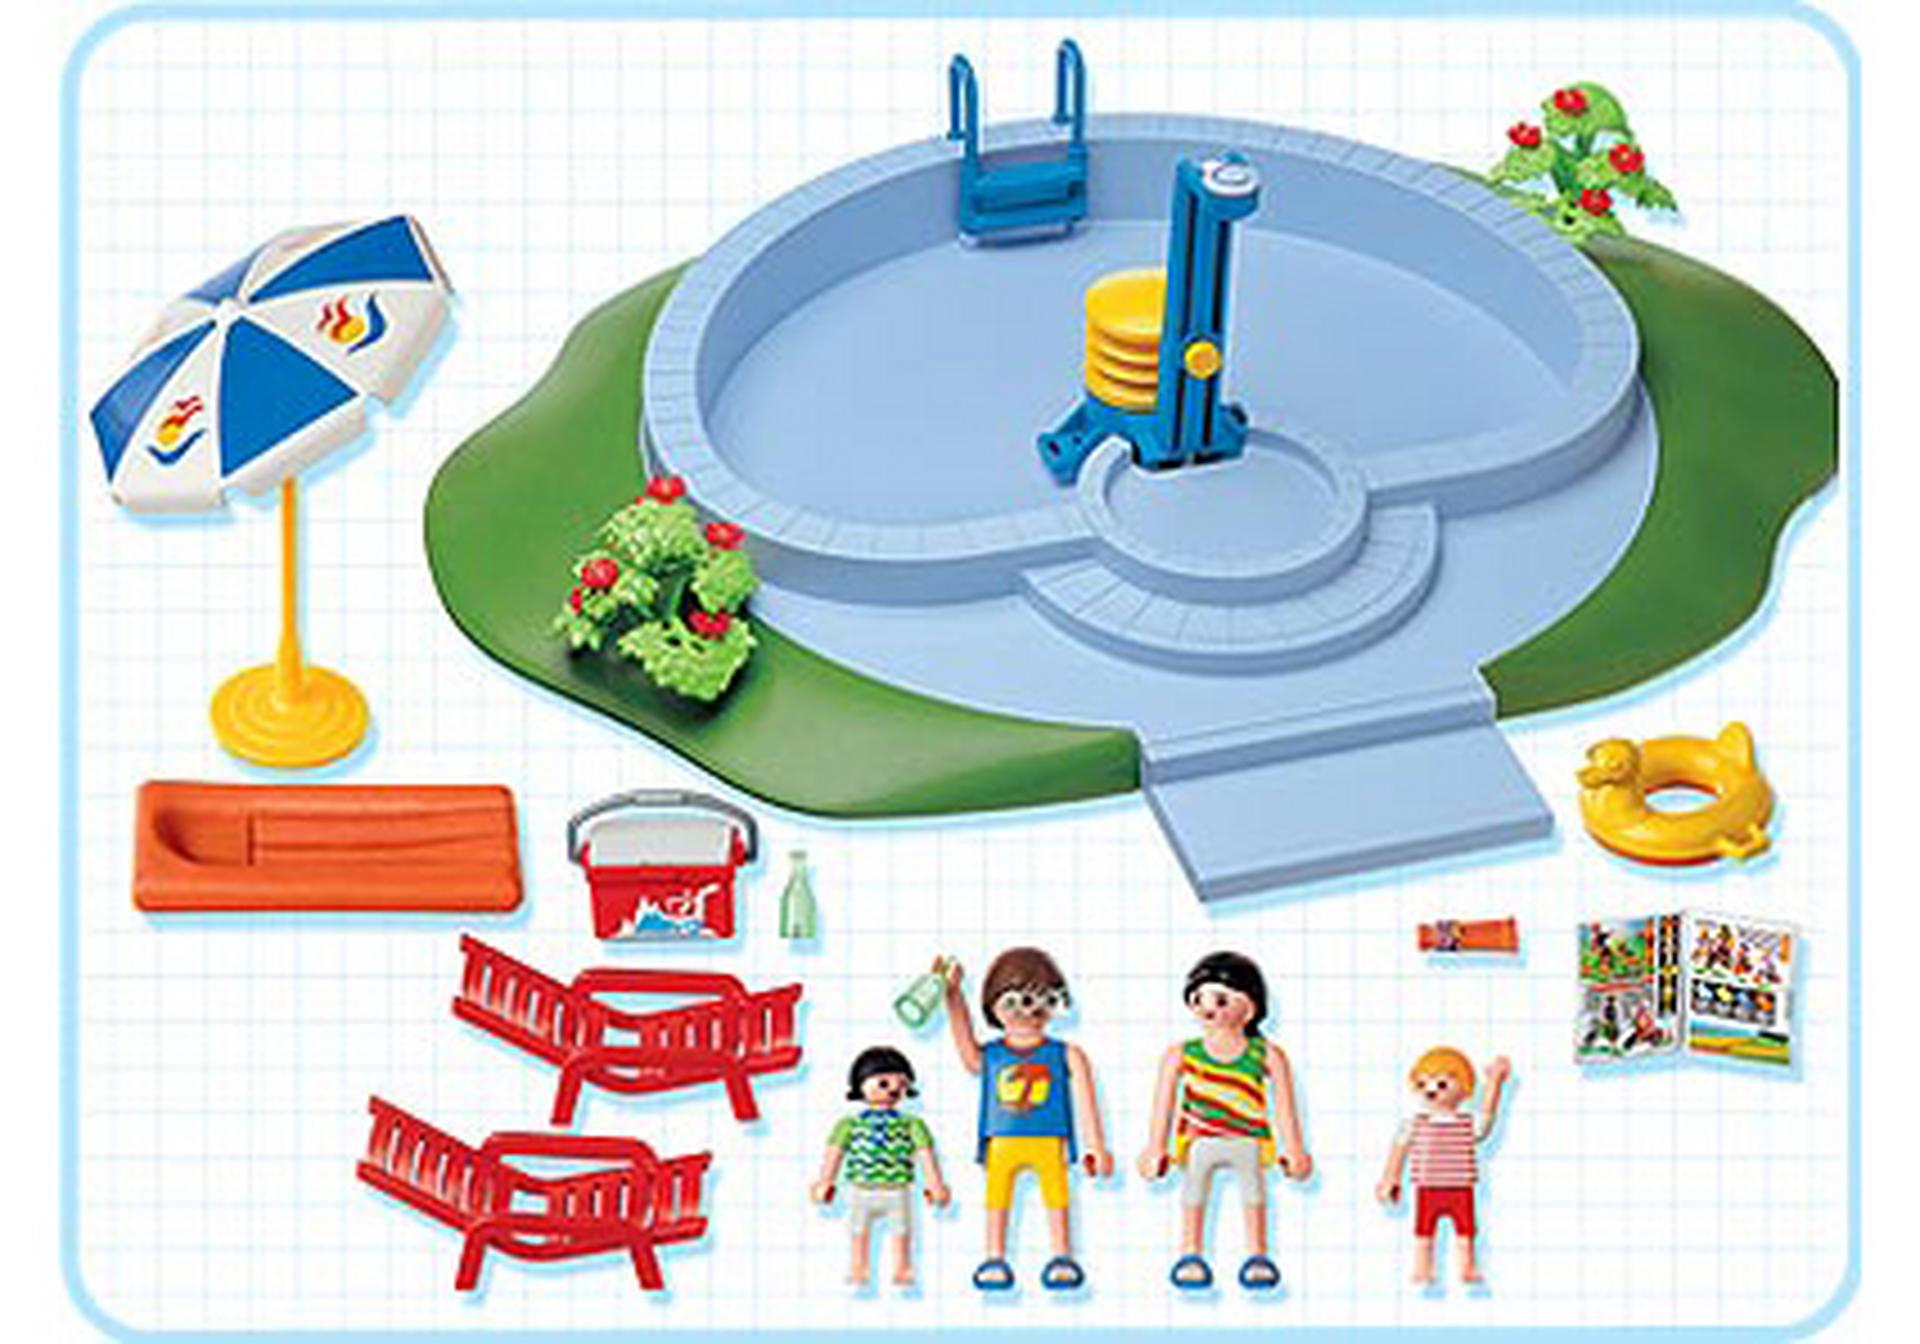 Famille piscine 3205 b playmobil france for Piscine de playmobil